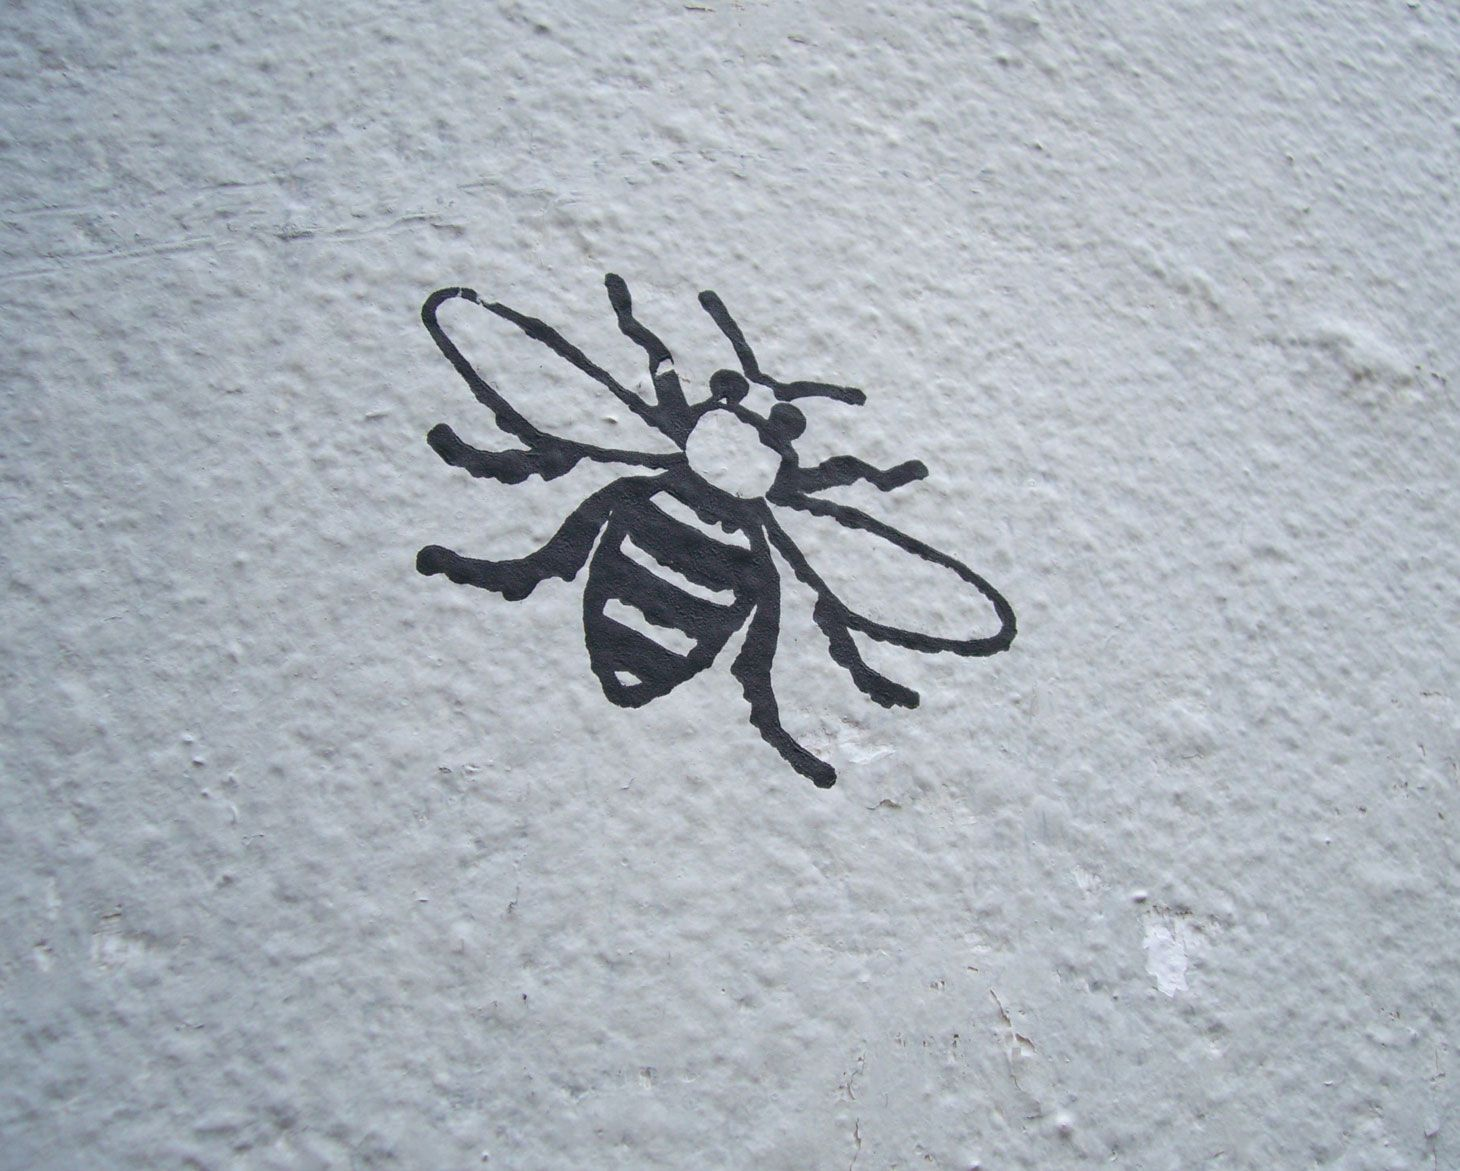 manchester bee graffiti tattoodles pinterest manchester graffiti and bees. Black Bedroom Furniture Sets. Home Design Ideas